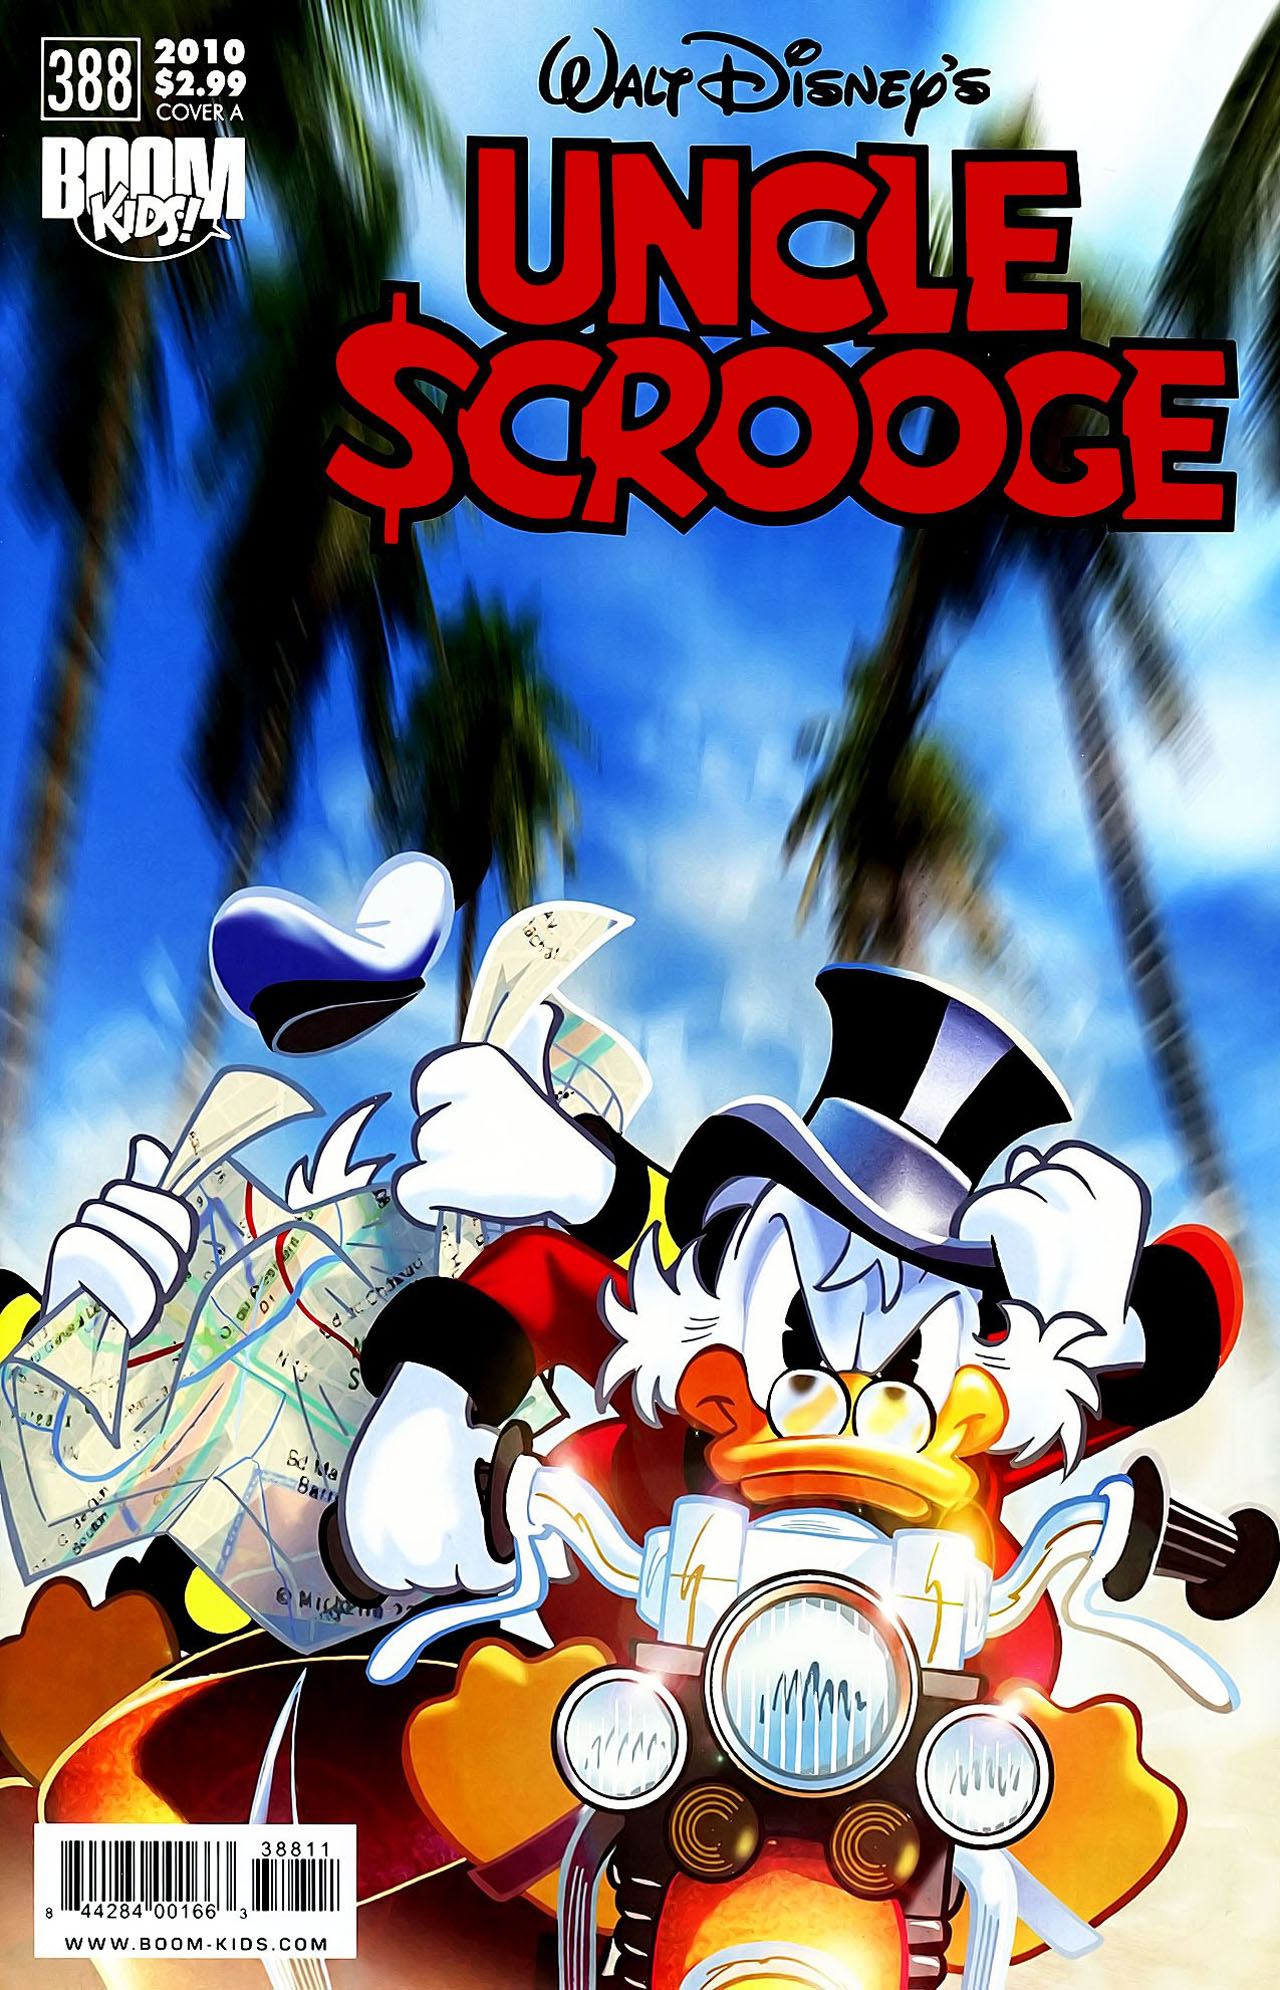 Read online Uncle Scrooge (1953) comic -  Issue #388 - 1